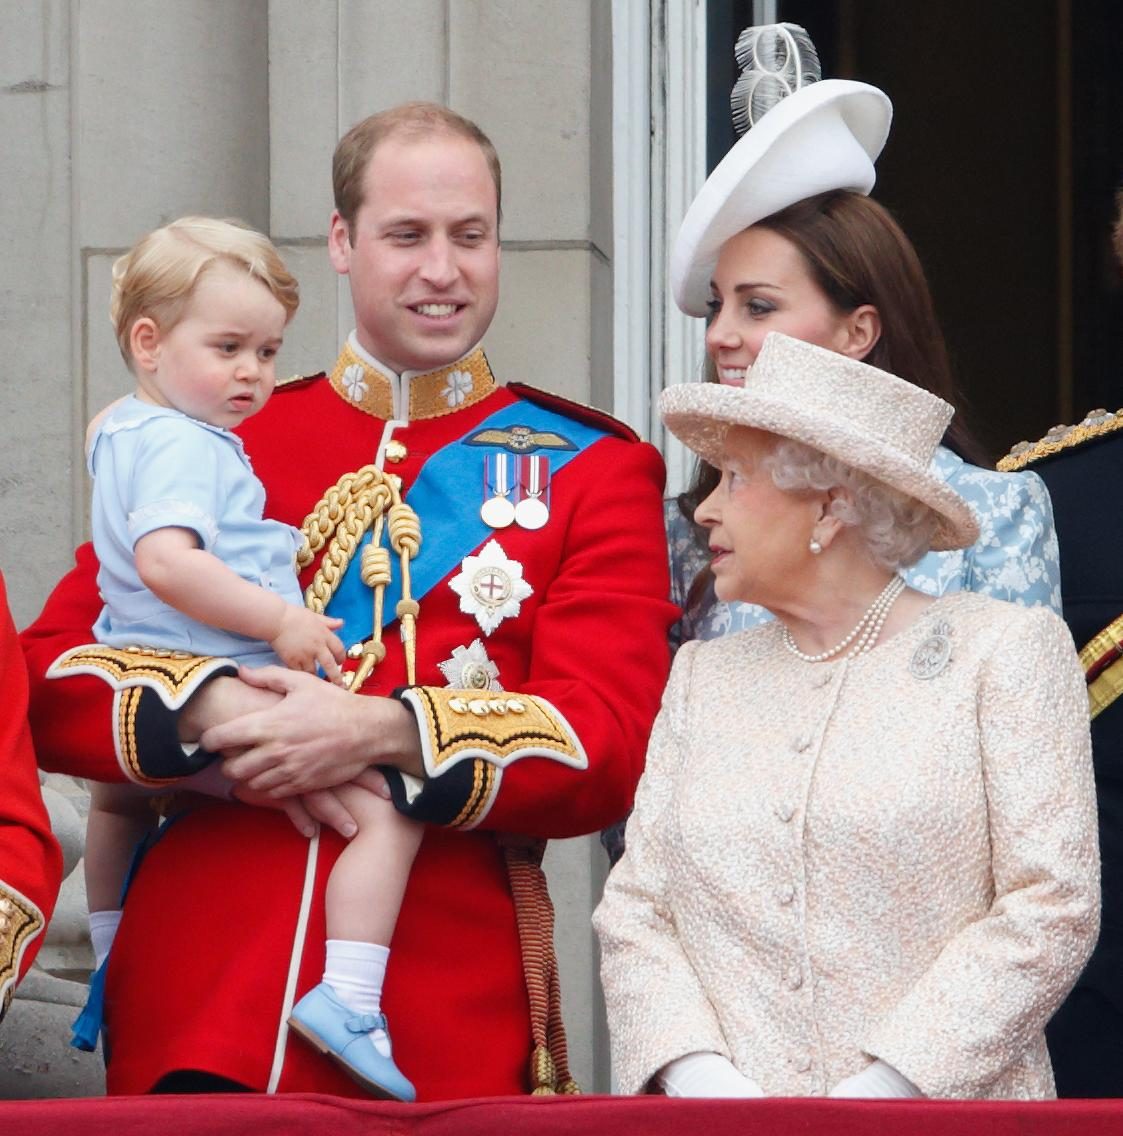 Prince William holds Prince George in his arms as the Queen and Kate Middleton look on on the Buckingham Palace balcony